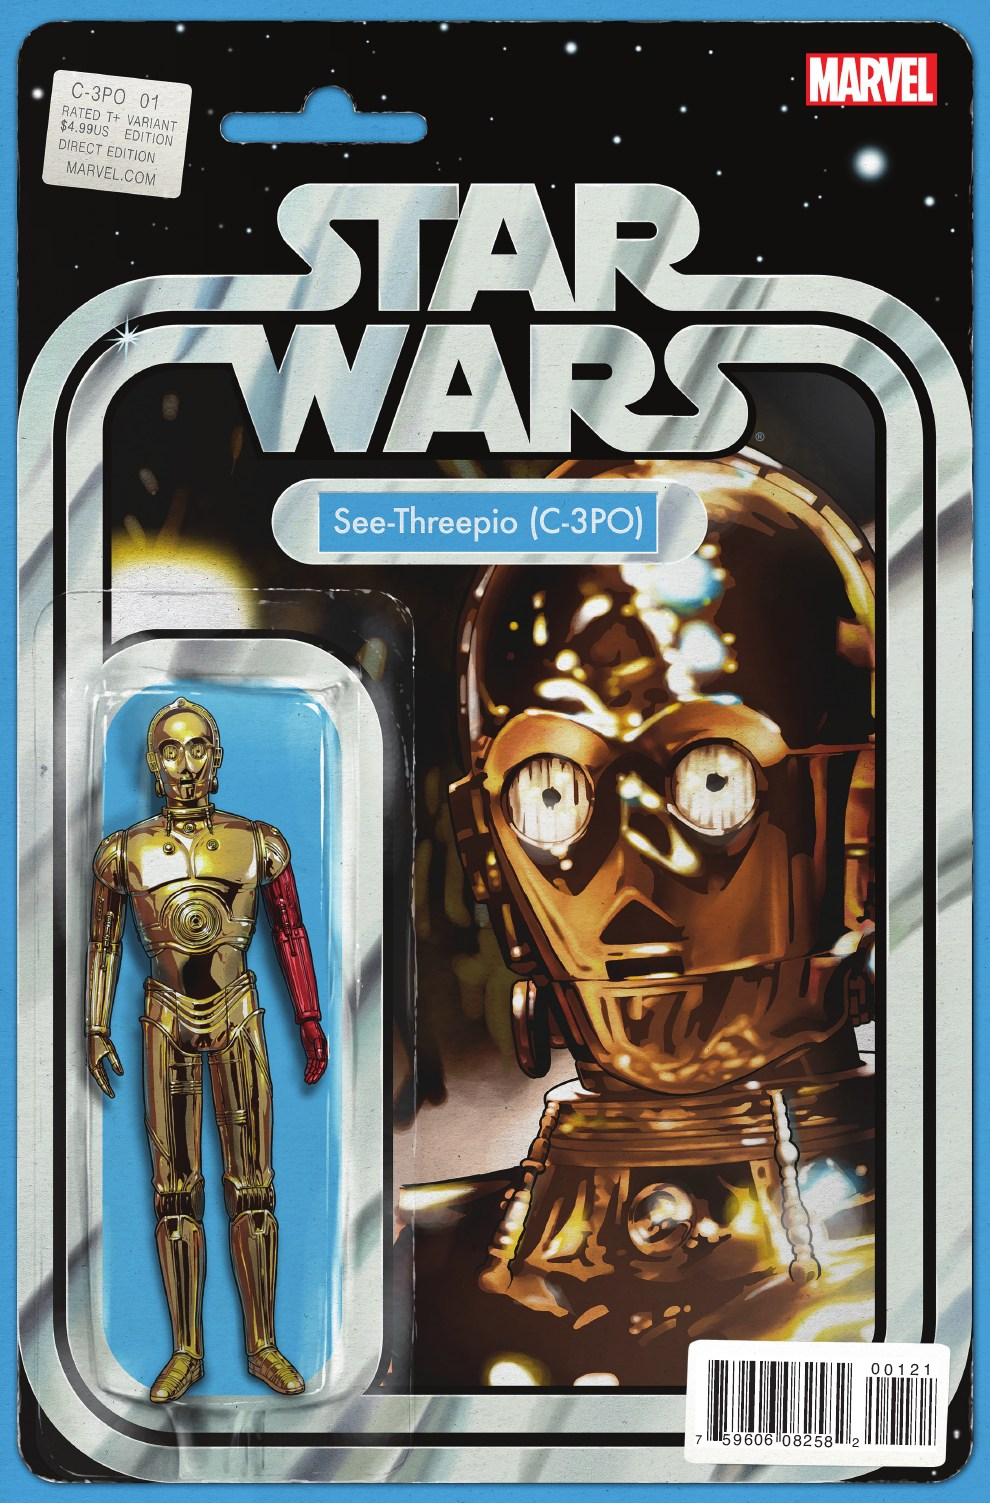 Star Wars Special: C-3PO #1 (Action Figure Variant Cover) (13.04.2016)